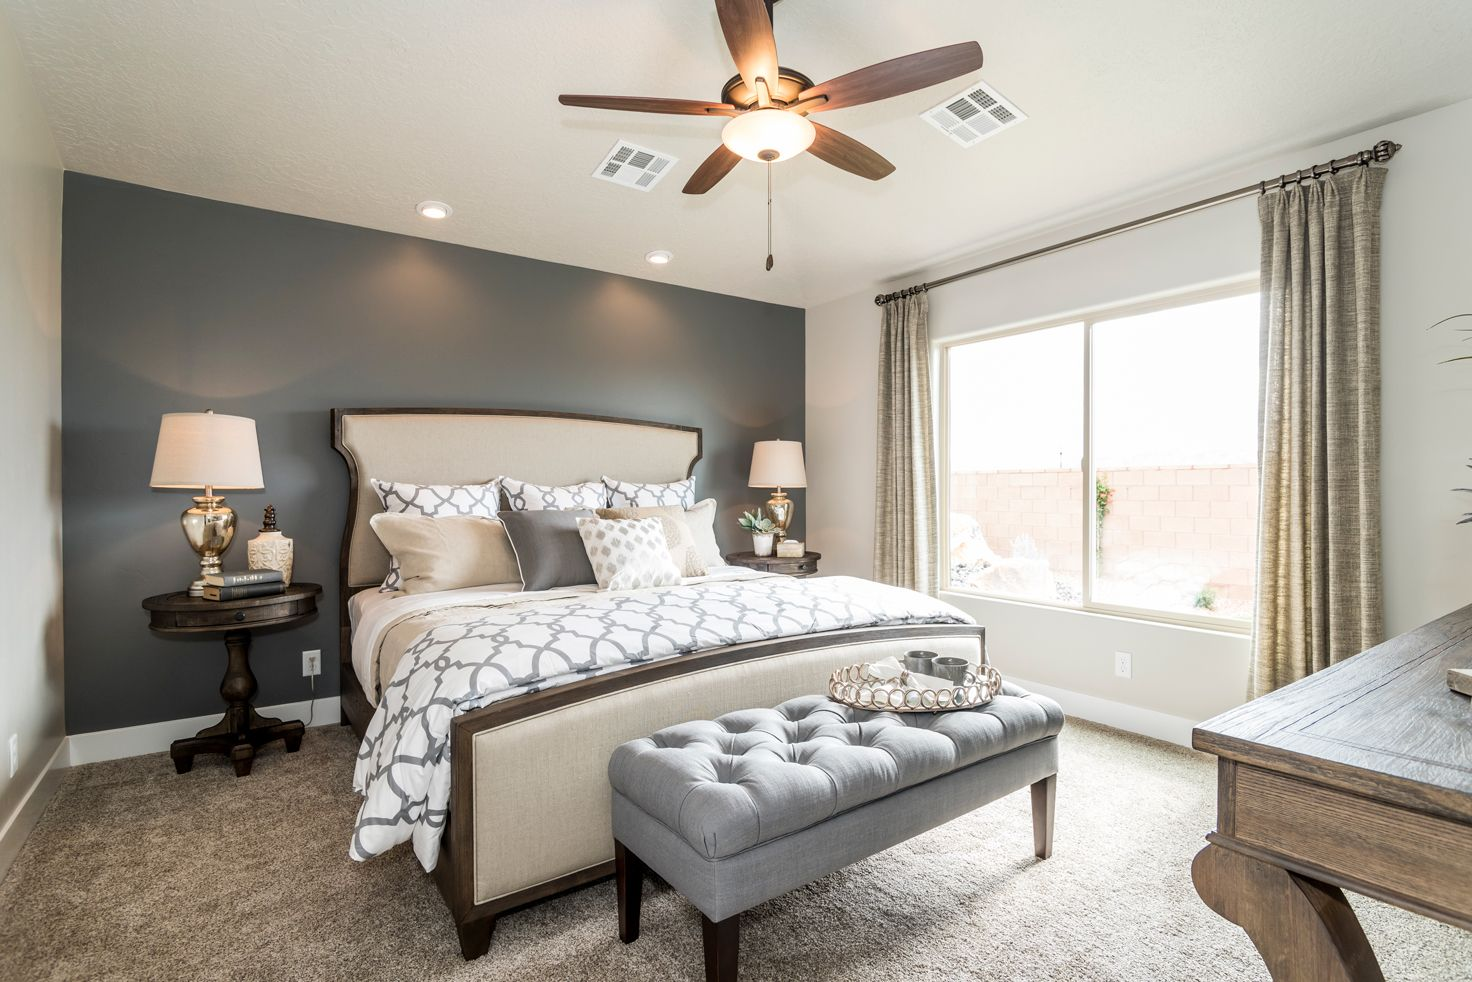 Bedroom featured in the Sand Ridge Plan 1872 By Ence Homes in St. George, UT